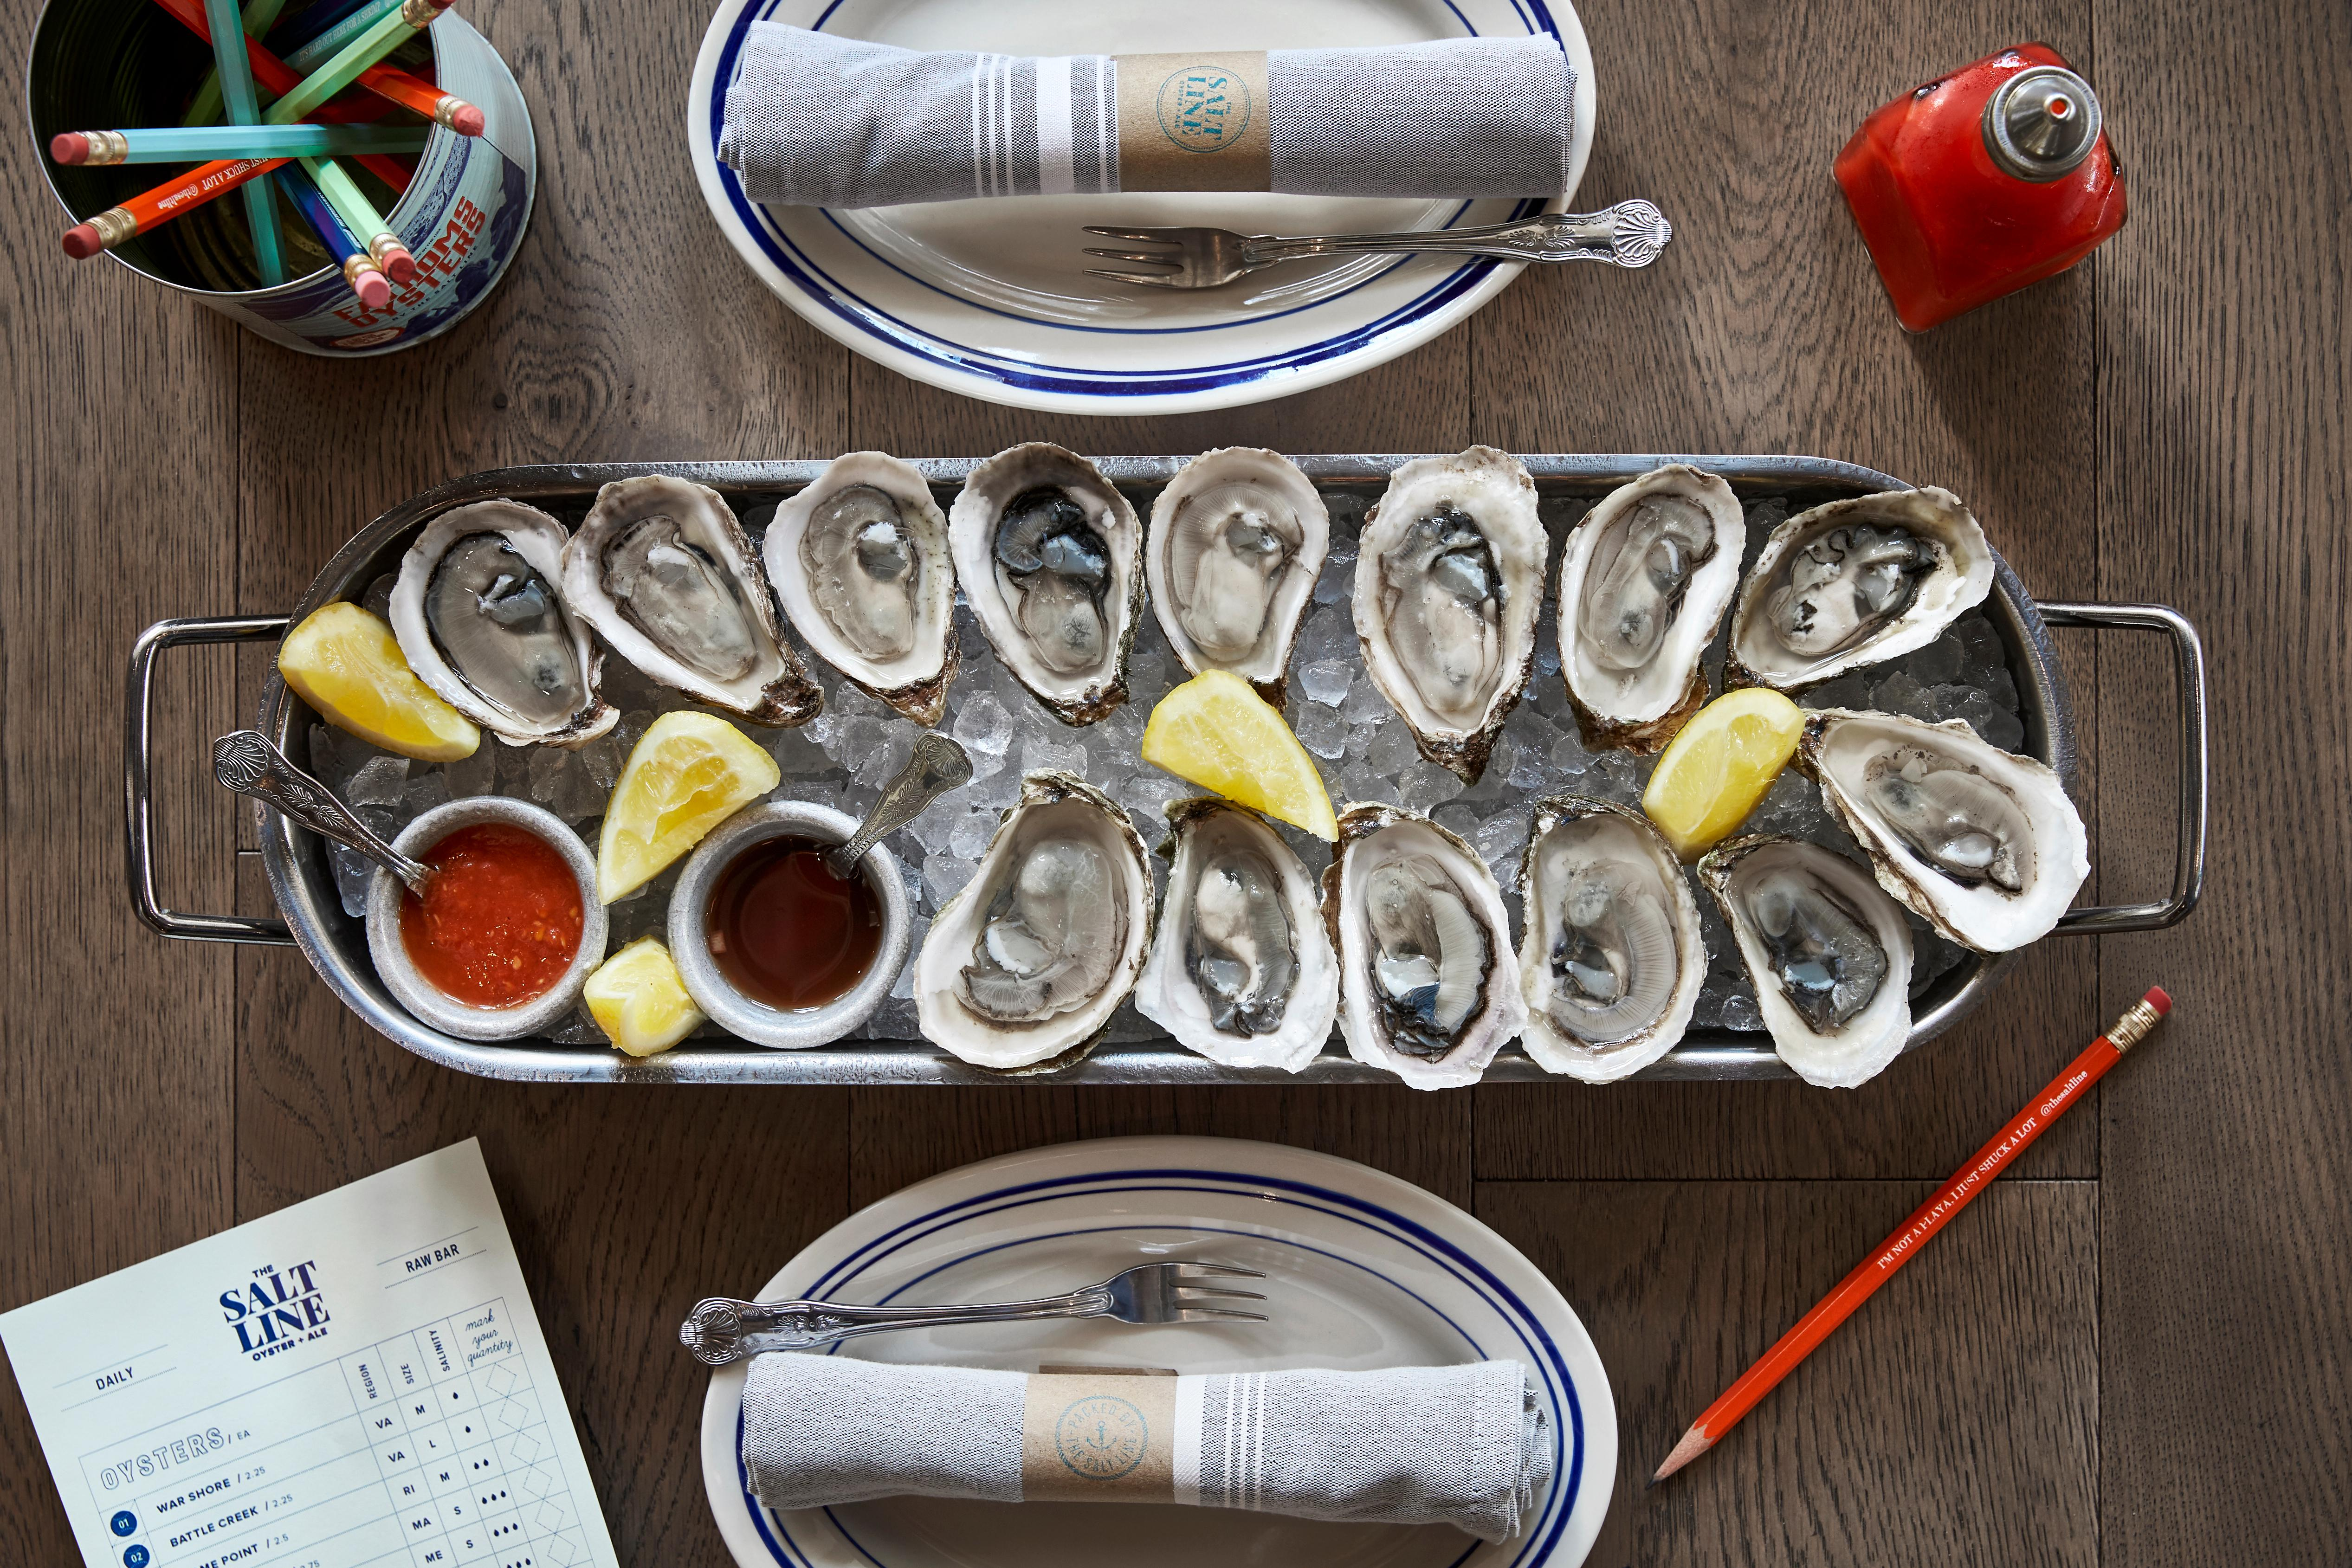 The Salt Line and Other Half Brewing Company will host the second annual Oyster Wars Saturday September 29. (Image: Greg Powers)